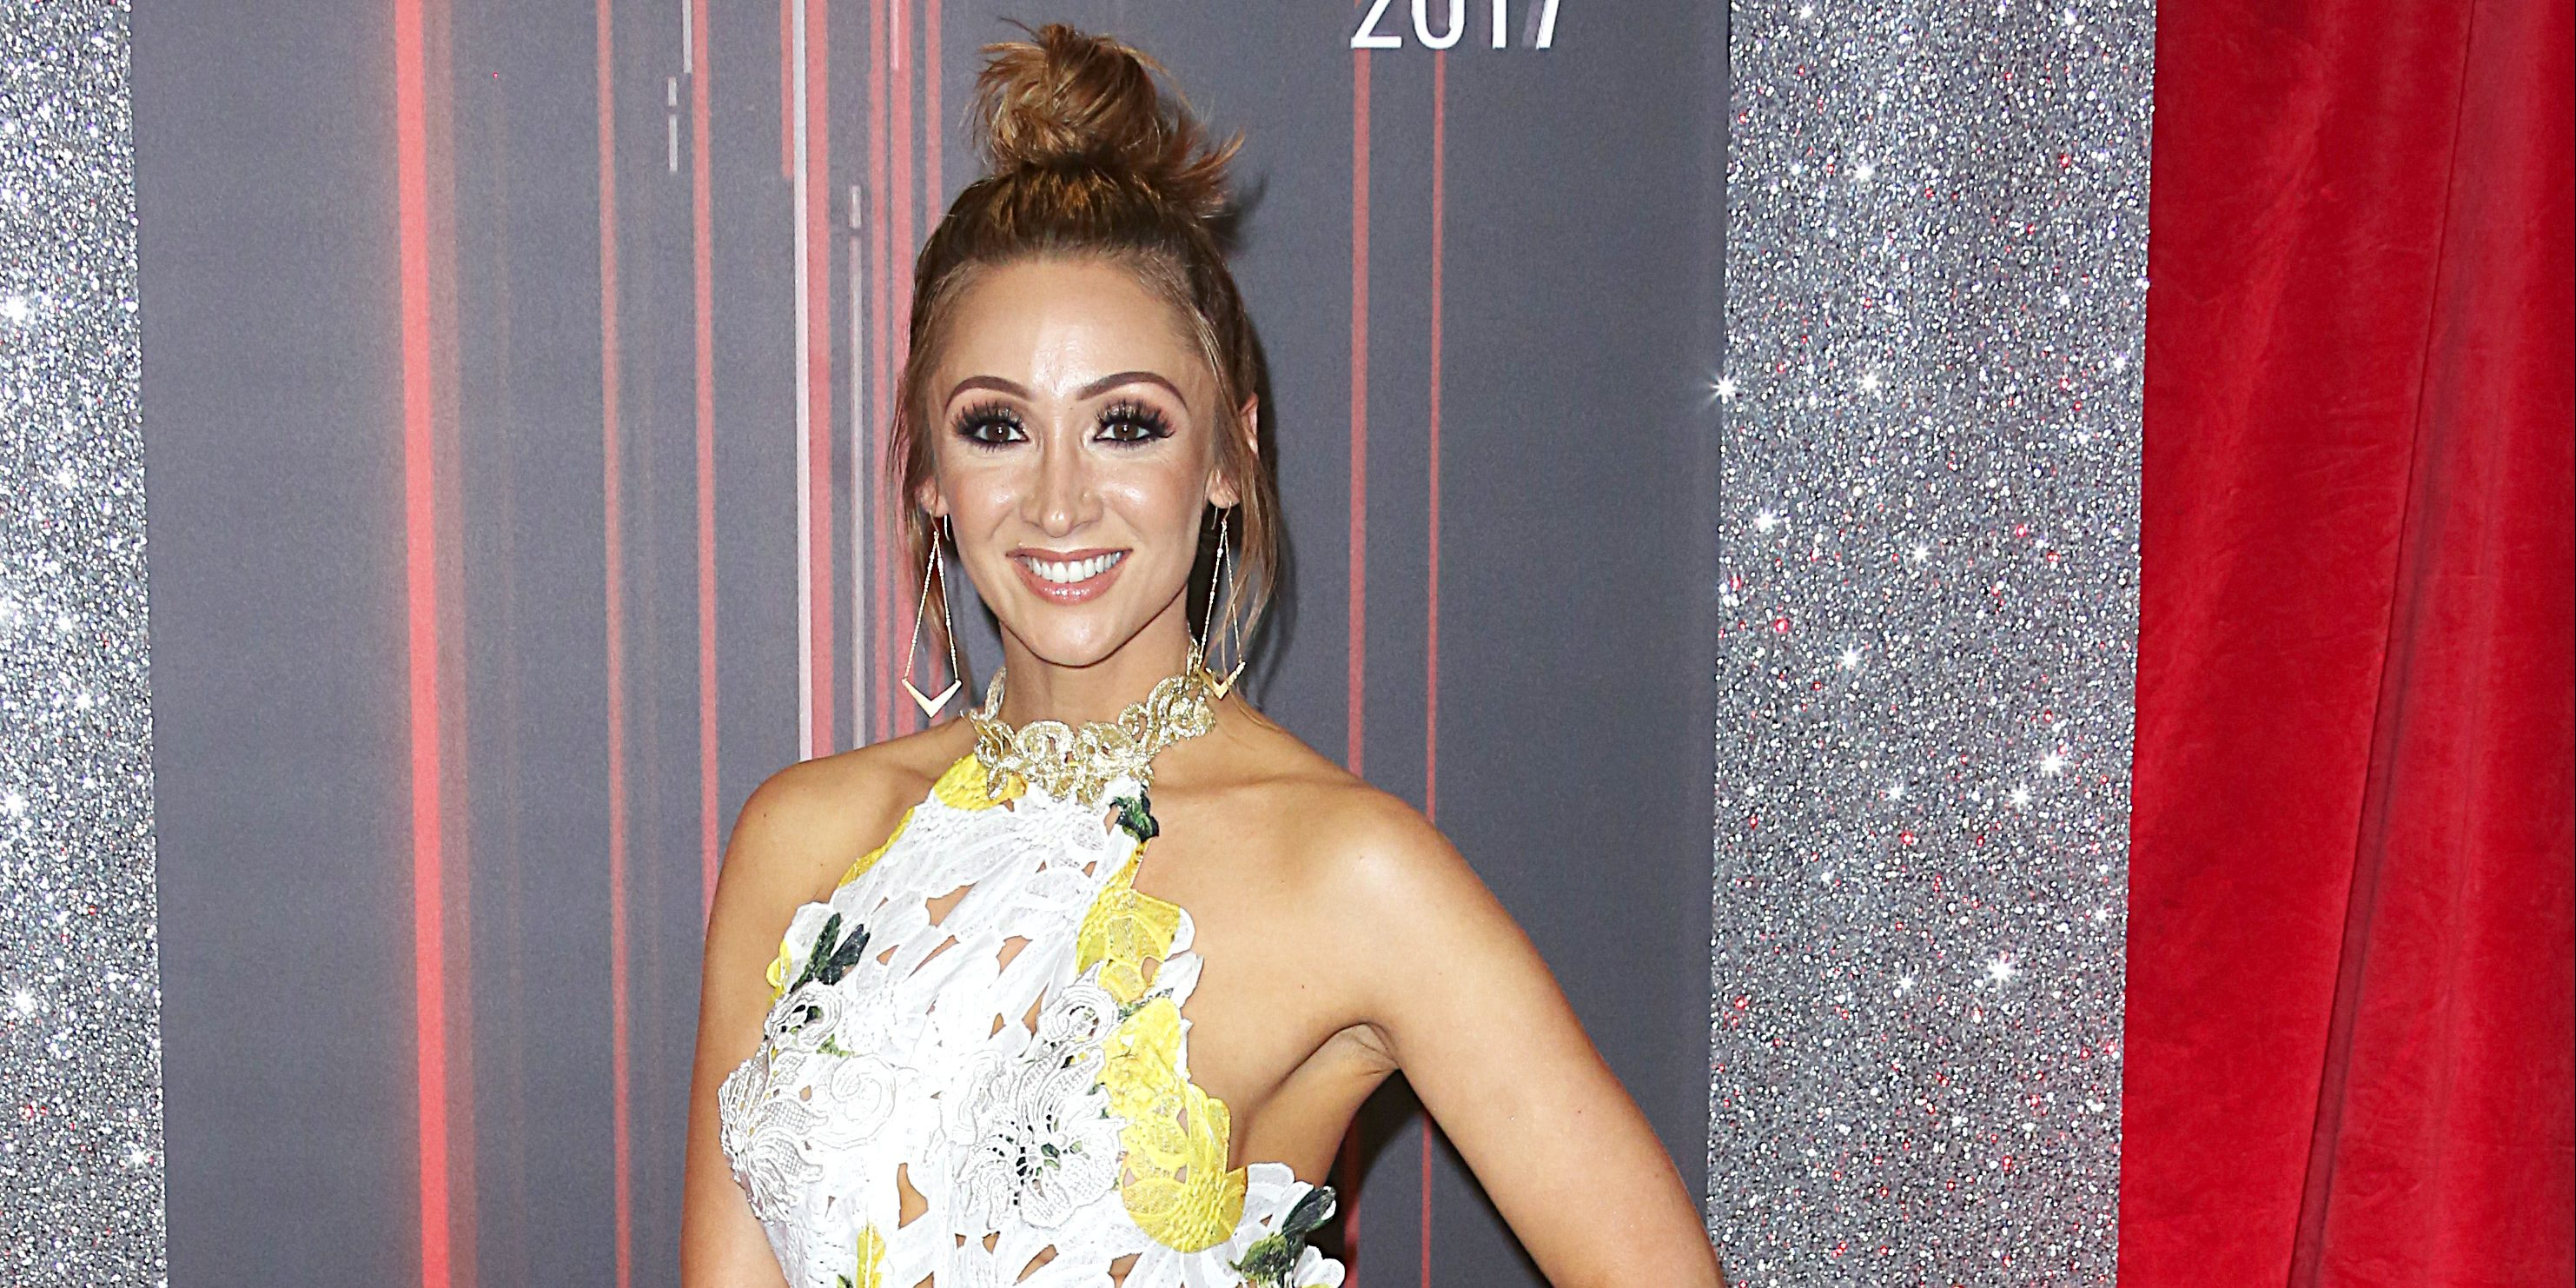 Lucy-Jo Hudson hopes for third Hollyoaks stint